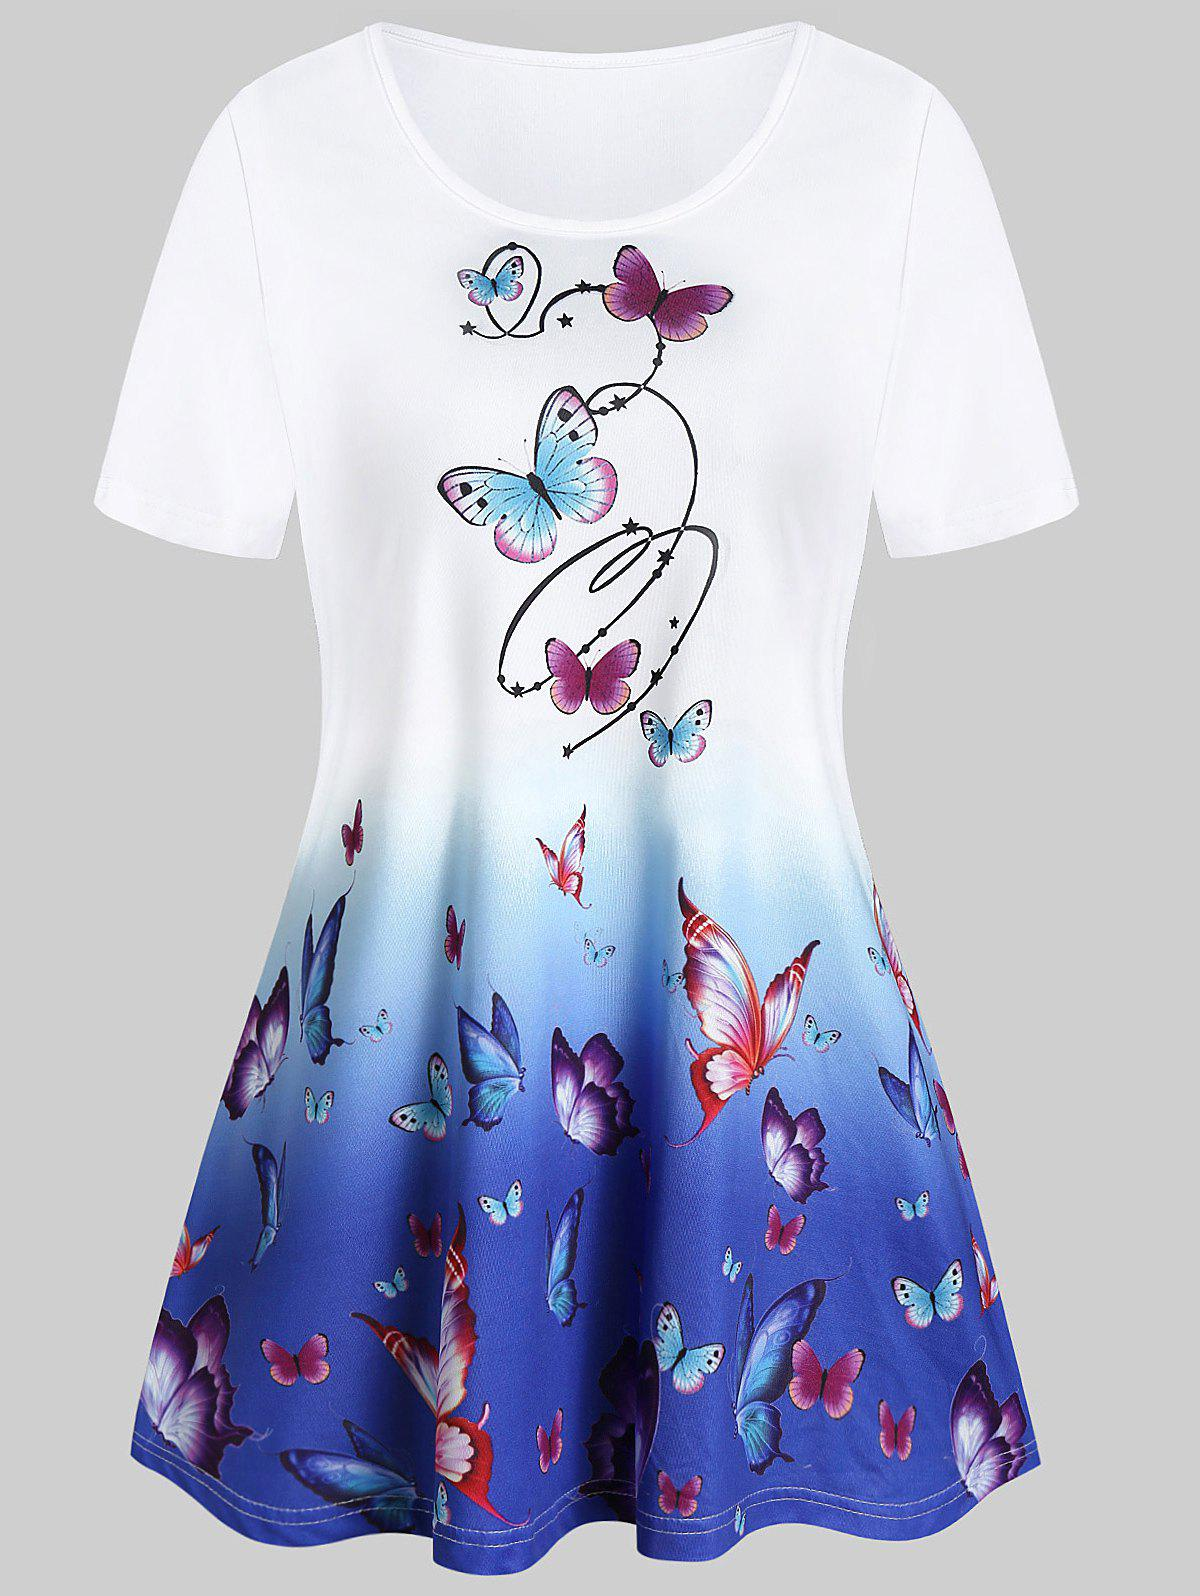 New Ombre Butterfly Print Tunic T Shirt